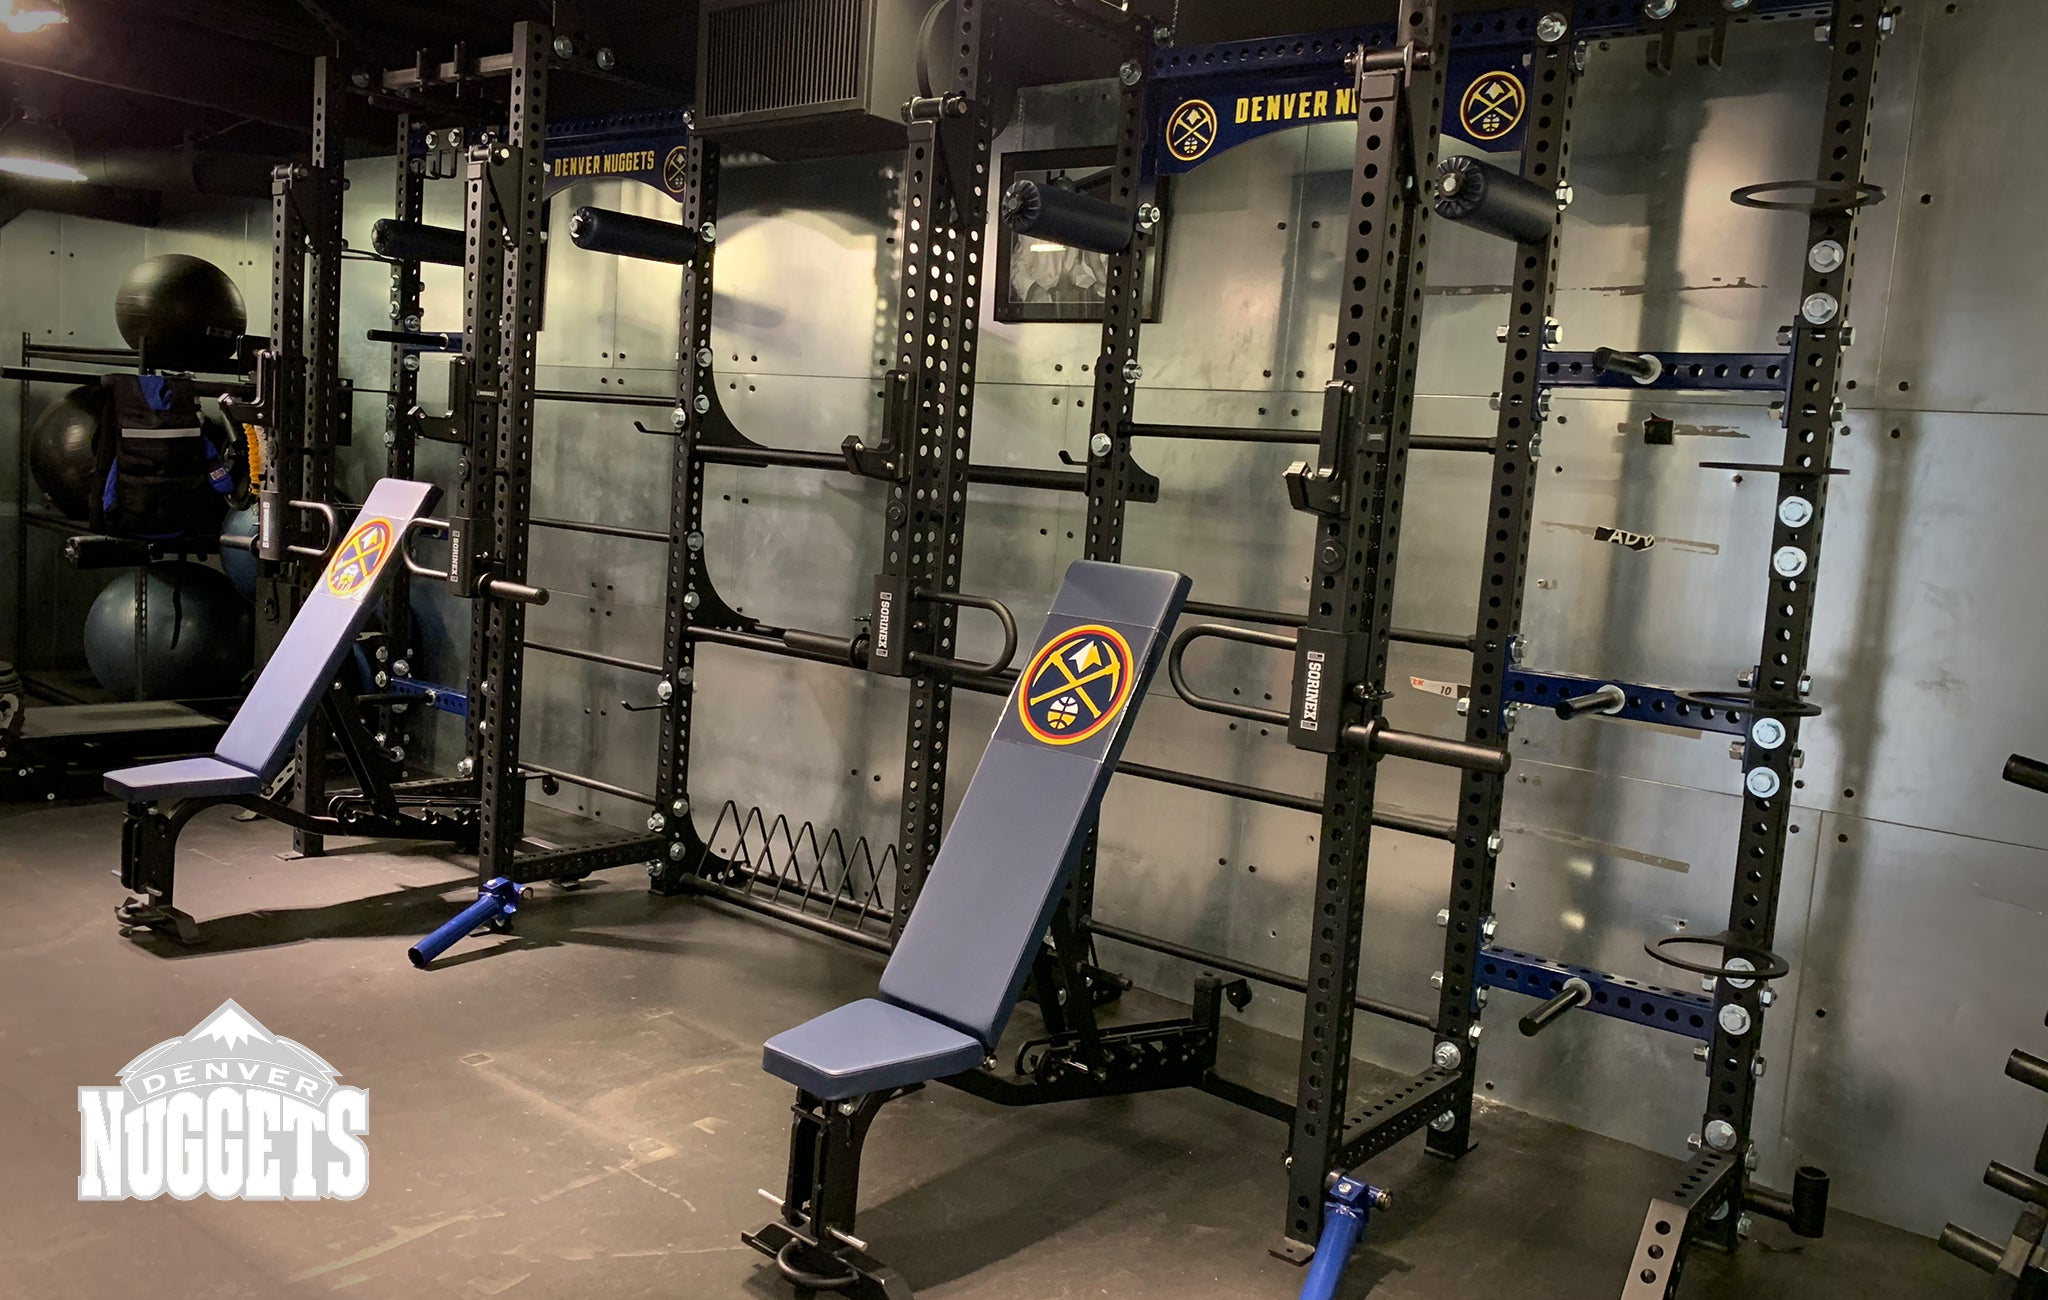 Denver Nuggets Sorinex strength and conditioning facility